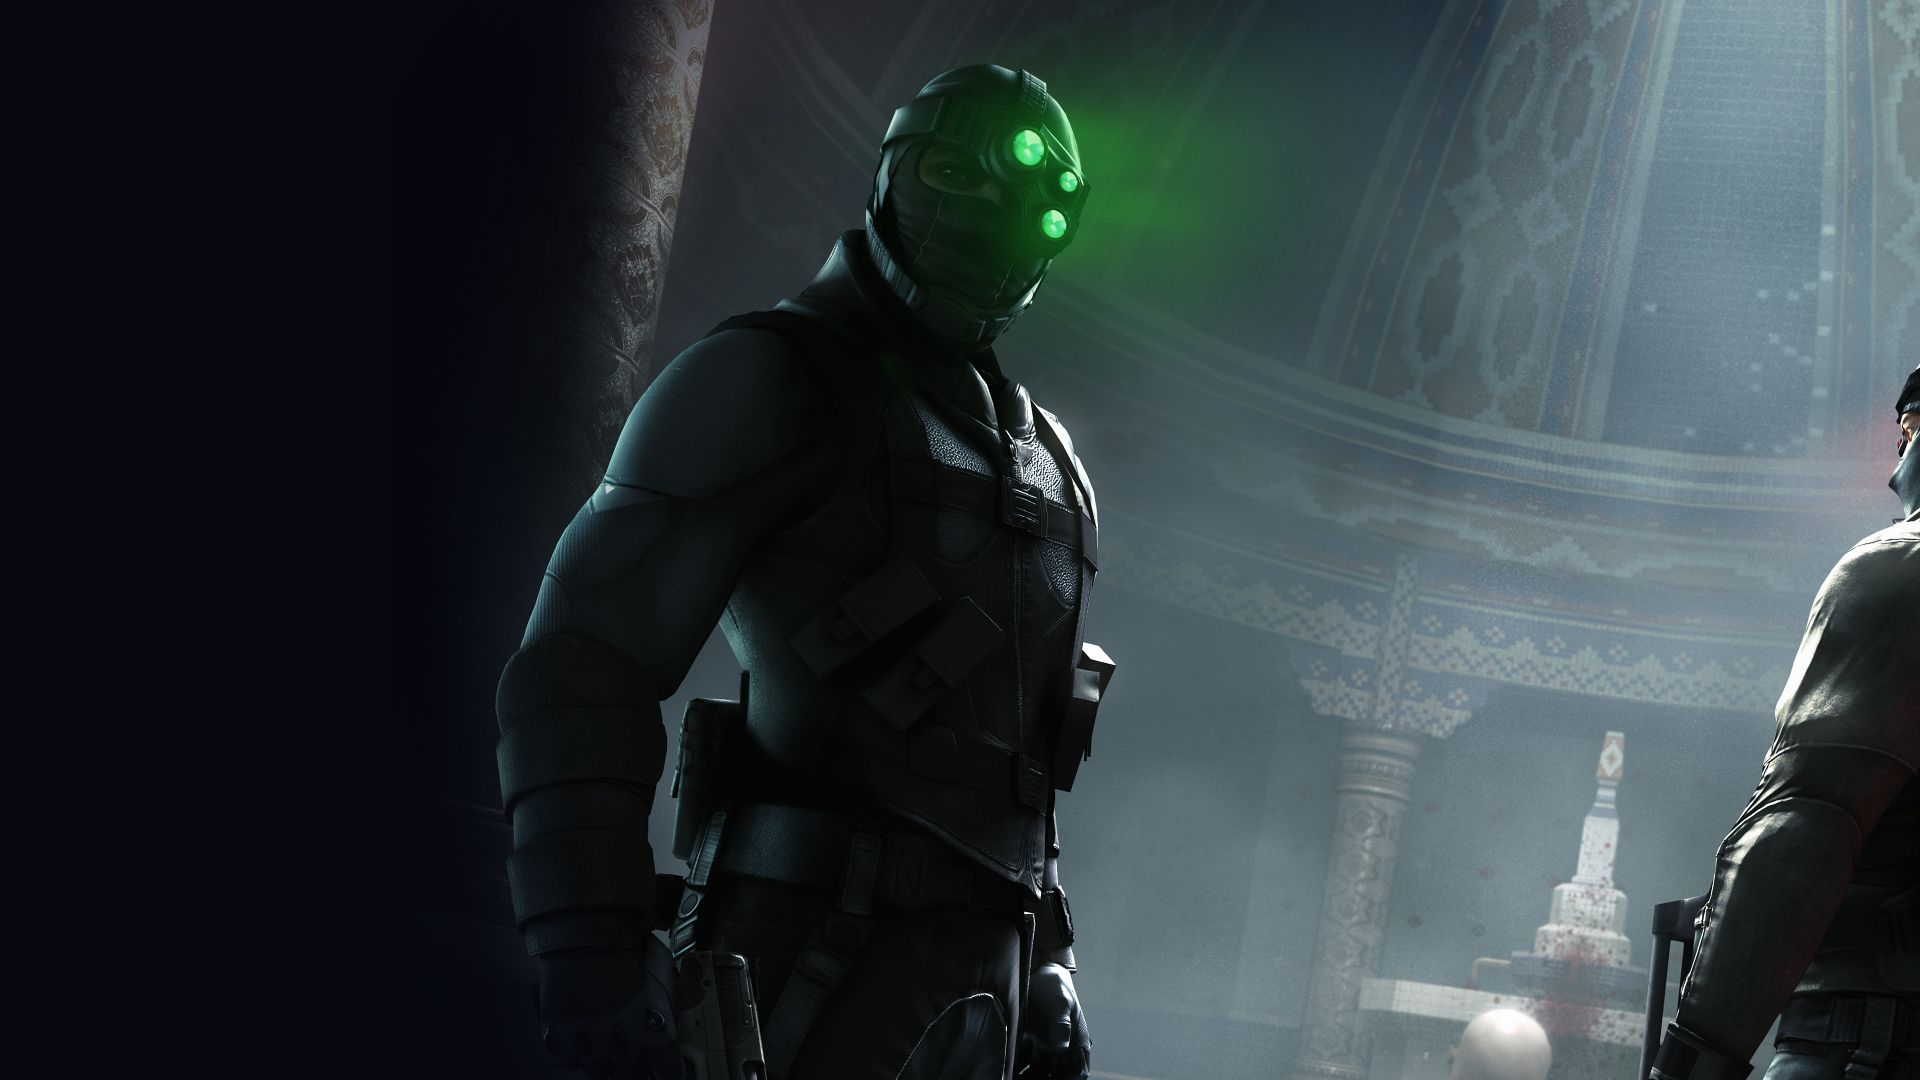 A new Splinter Cell might be unveiled at E3 2018